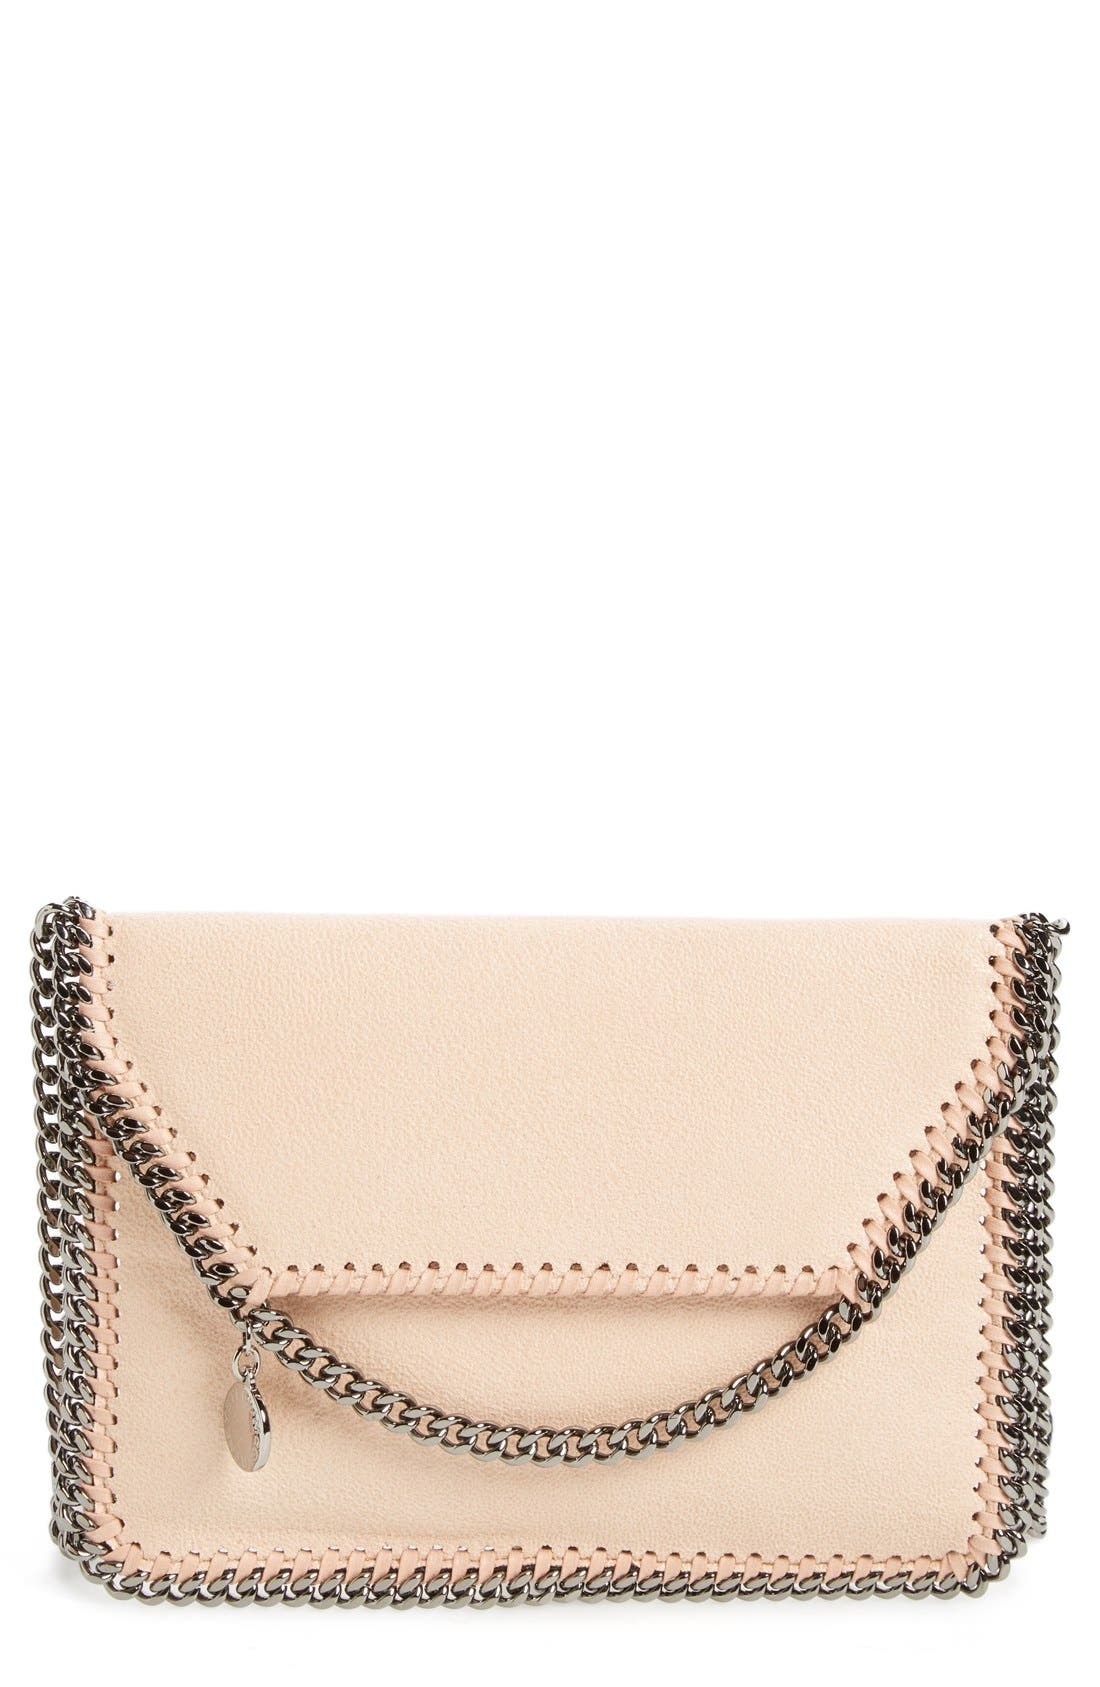 Alternate Image 1 Selected - Stella McCartney 'Mini Falabella - Shaggy Deer' Faux Leather Crossbody Bag